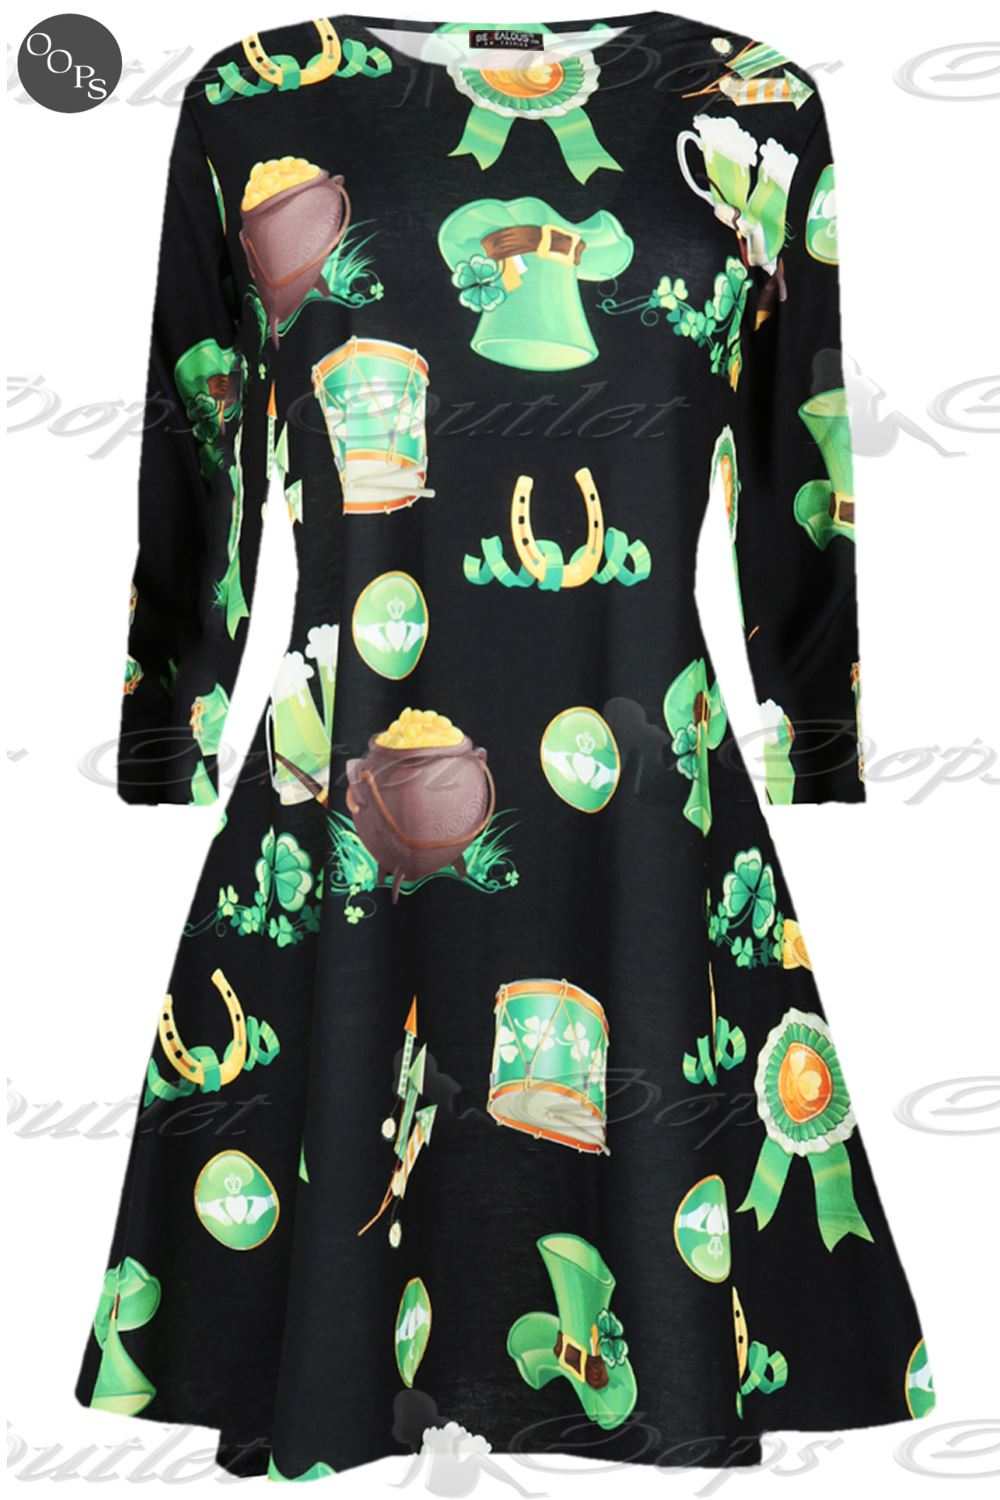 patrick women Shop our collection of costume themes, holiday, st patrick's day, easter bunny, holiday, 10/12, plus for 2015 at buycostumescom - where life's better in costume.